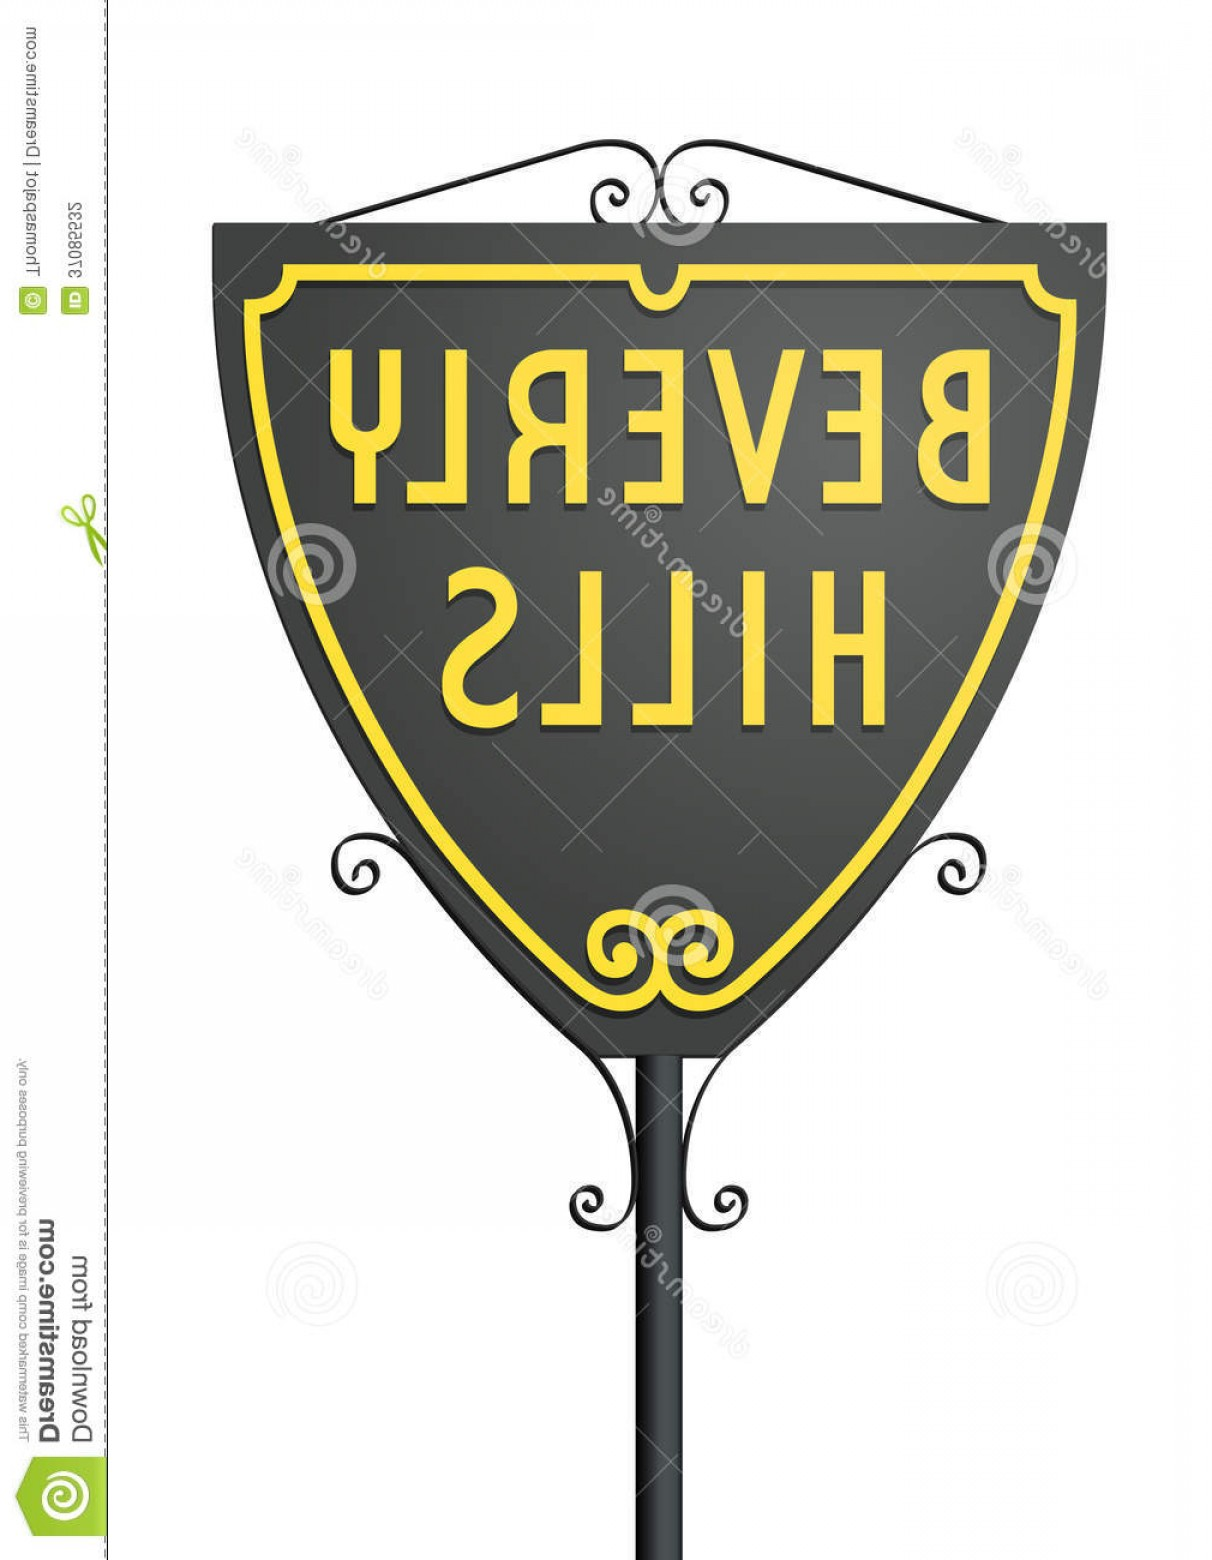 Hollywood Hills Vector: Stock Photography Beverly Hills Sign Vector Illustration Isolated Road Image